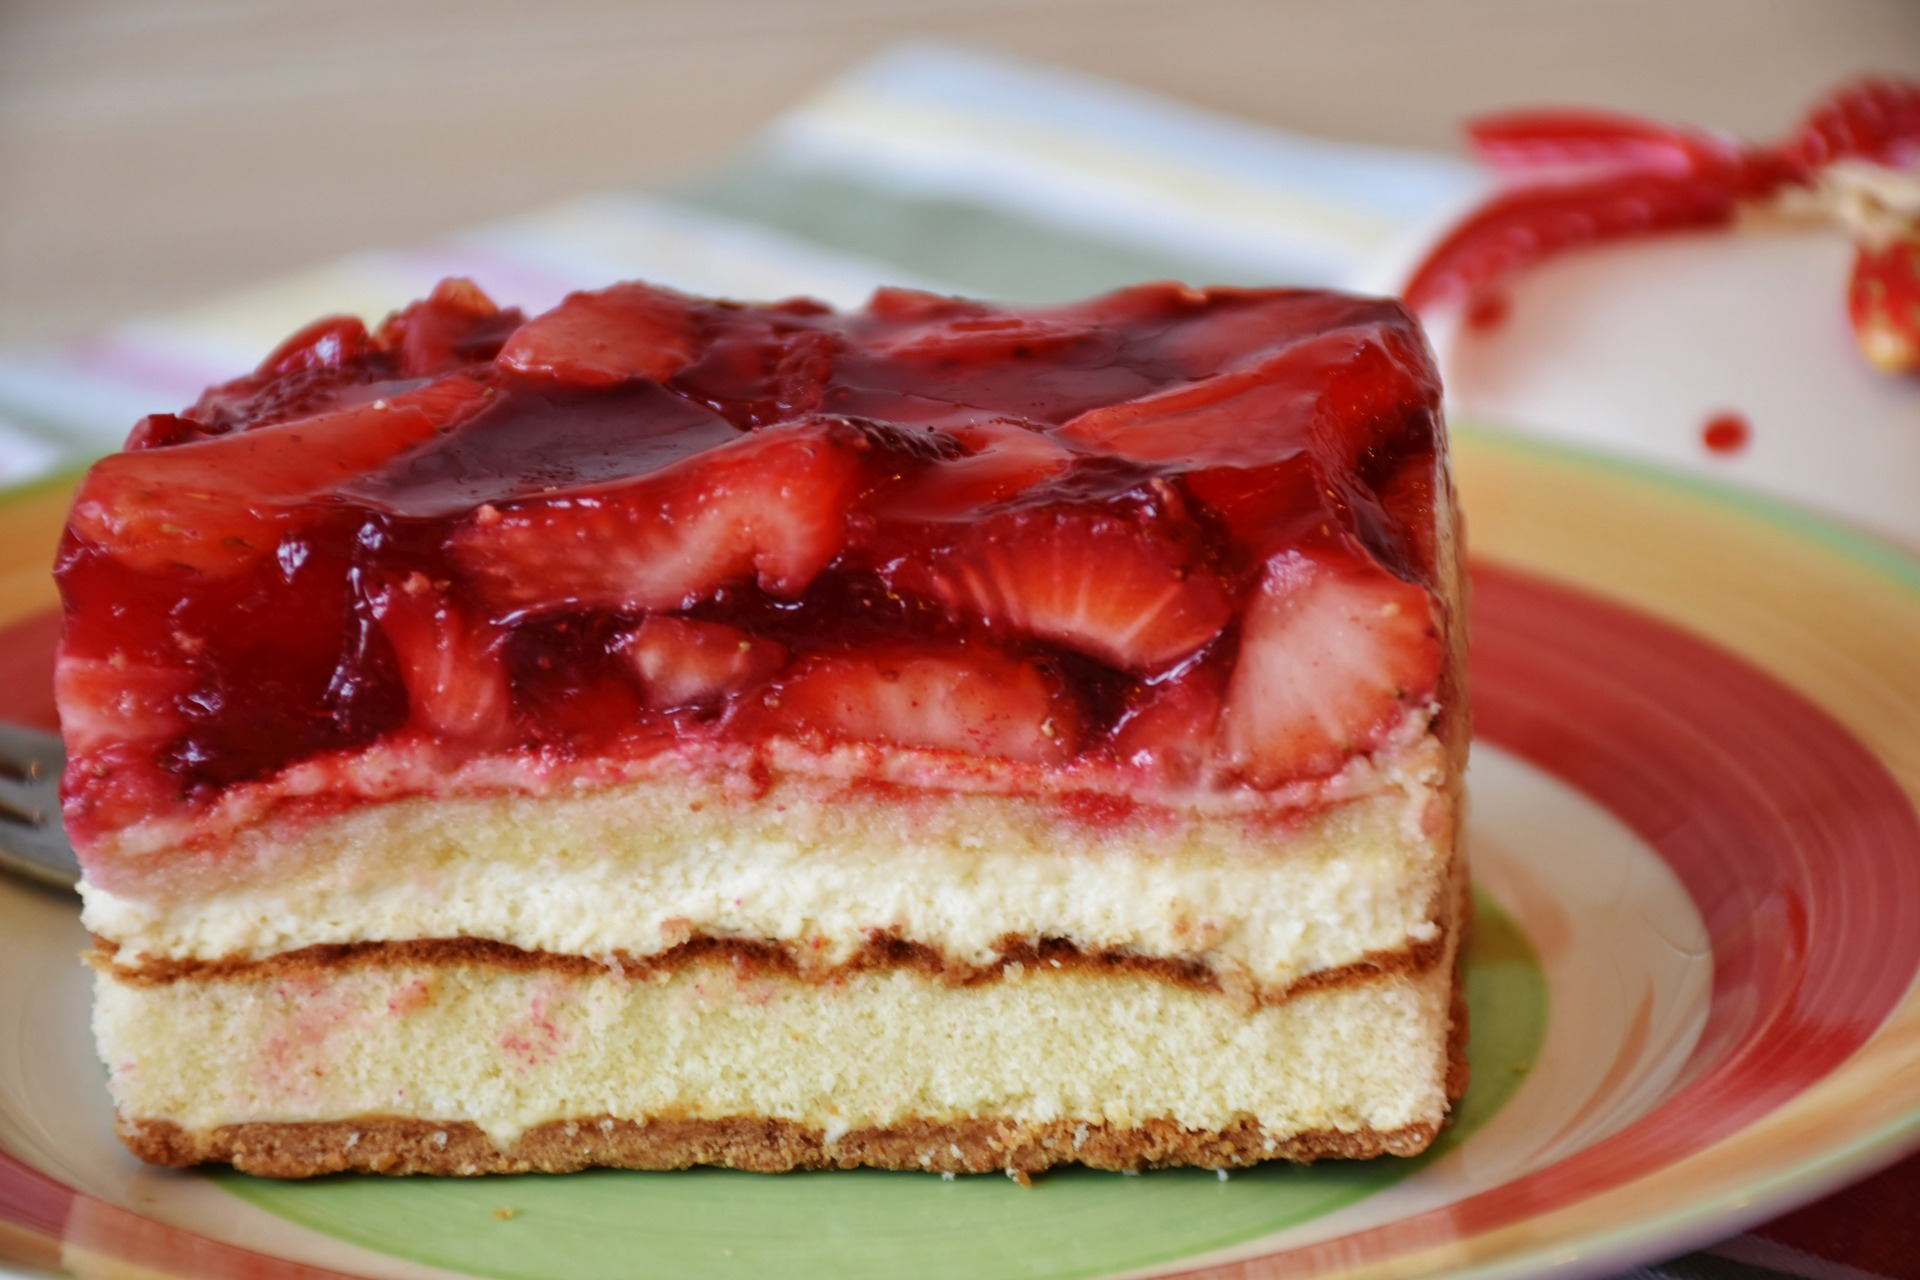 Enjoy Some Strawberry Vanilla Cheesecake